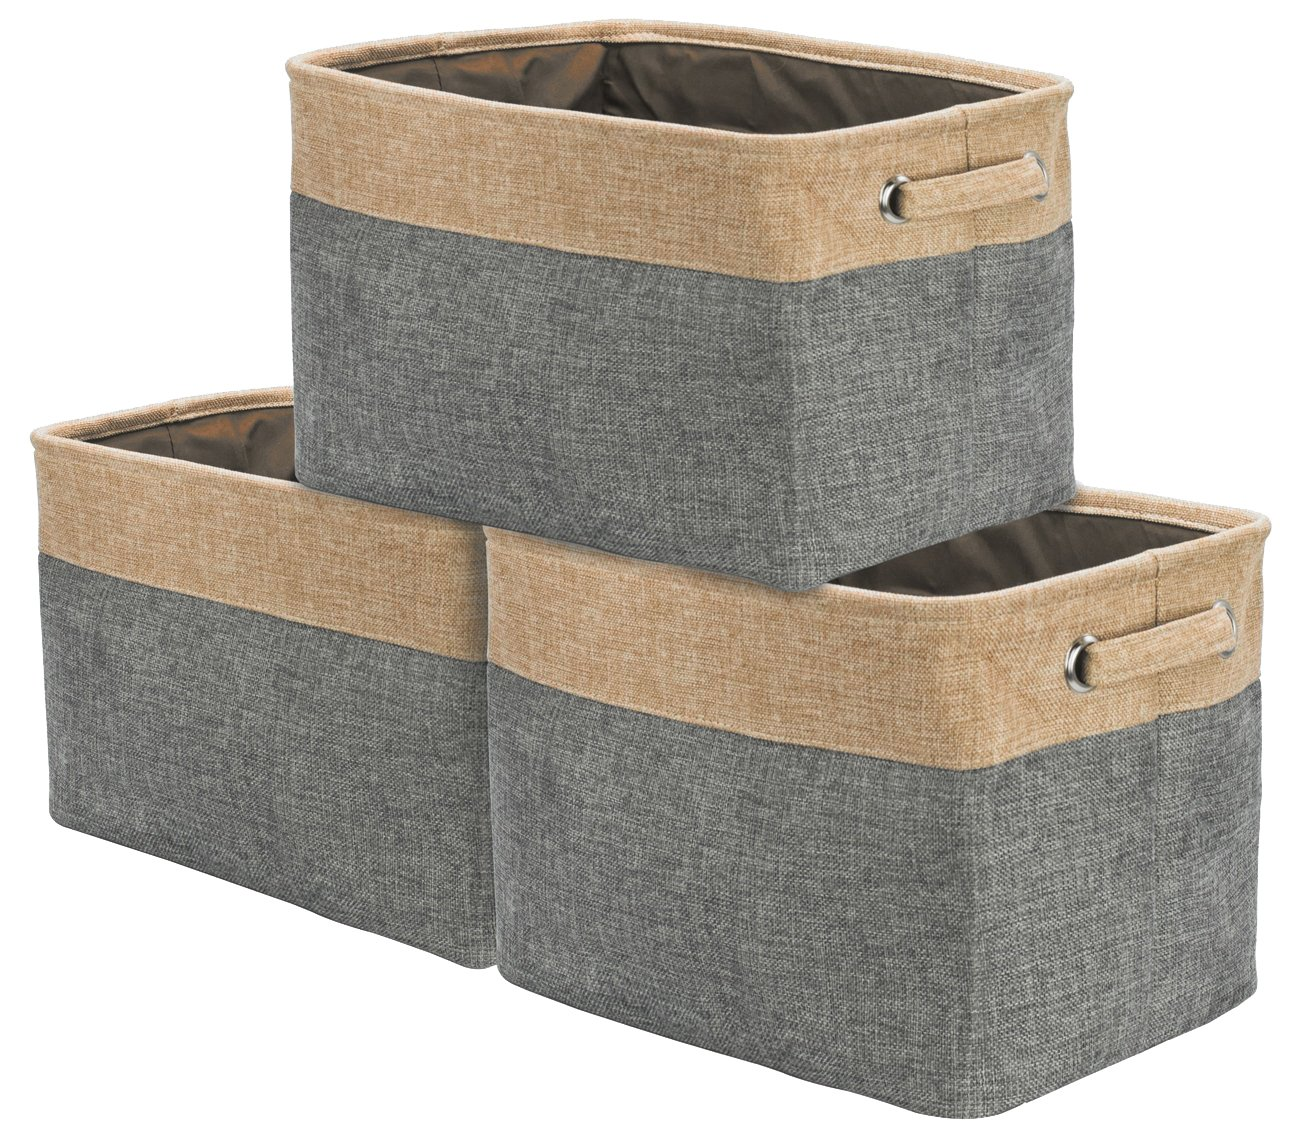 Sorbus Storage Large Basket Set [3-Pack] - 15 L x 10 W x 9 H - Big Rectangular Fabric Collapsible Organizer Bin Box with Carry Handles for Linens, Towels, Toys, Clothes, Kids Room, Nursery (Grey/Tan)